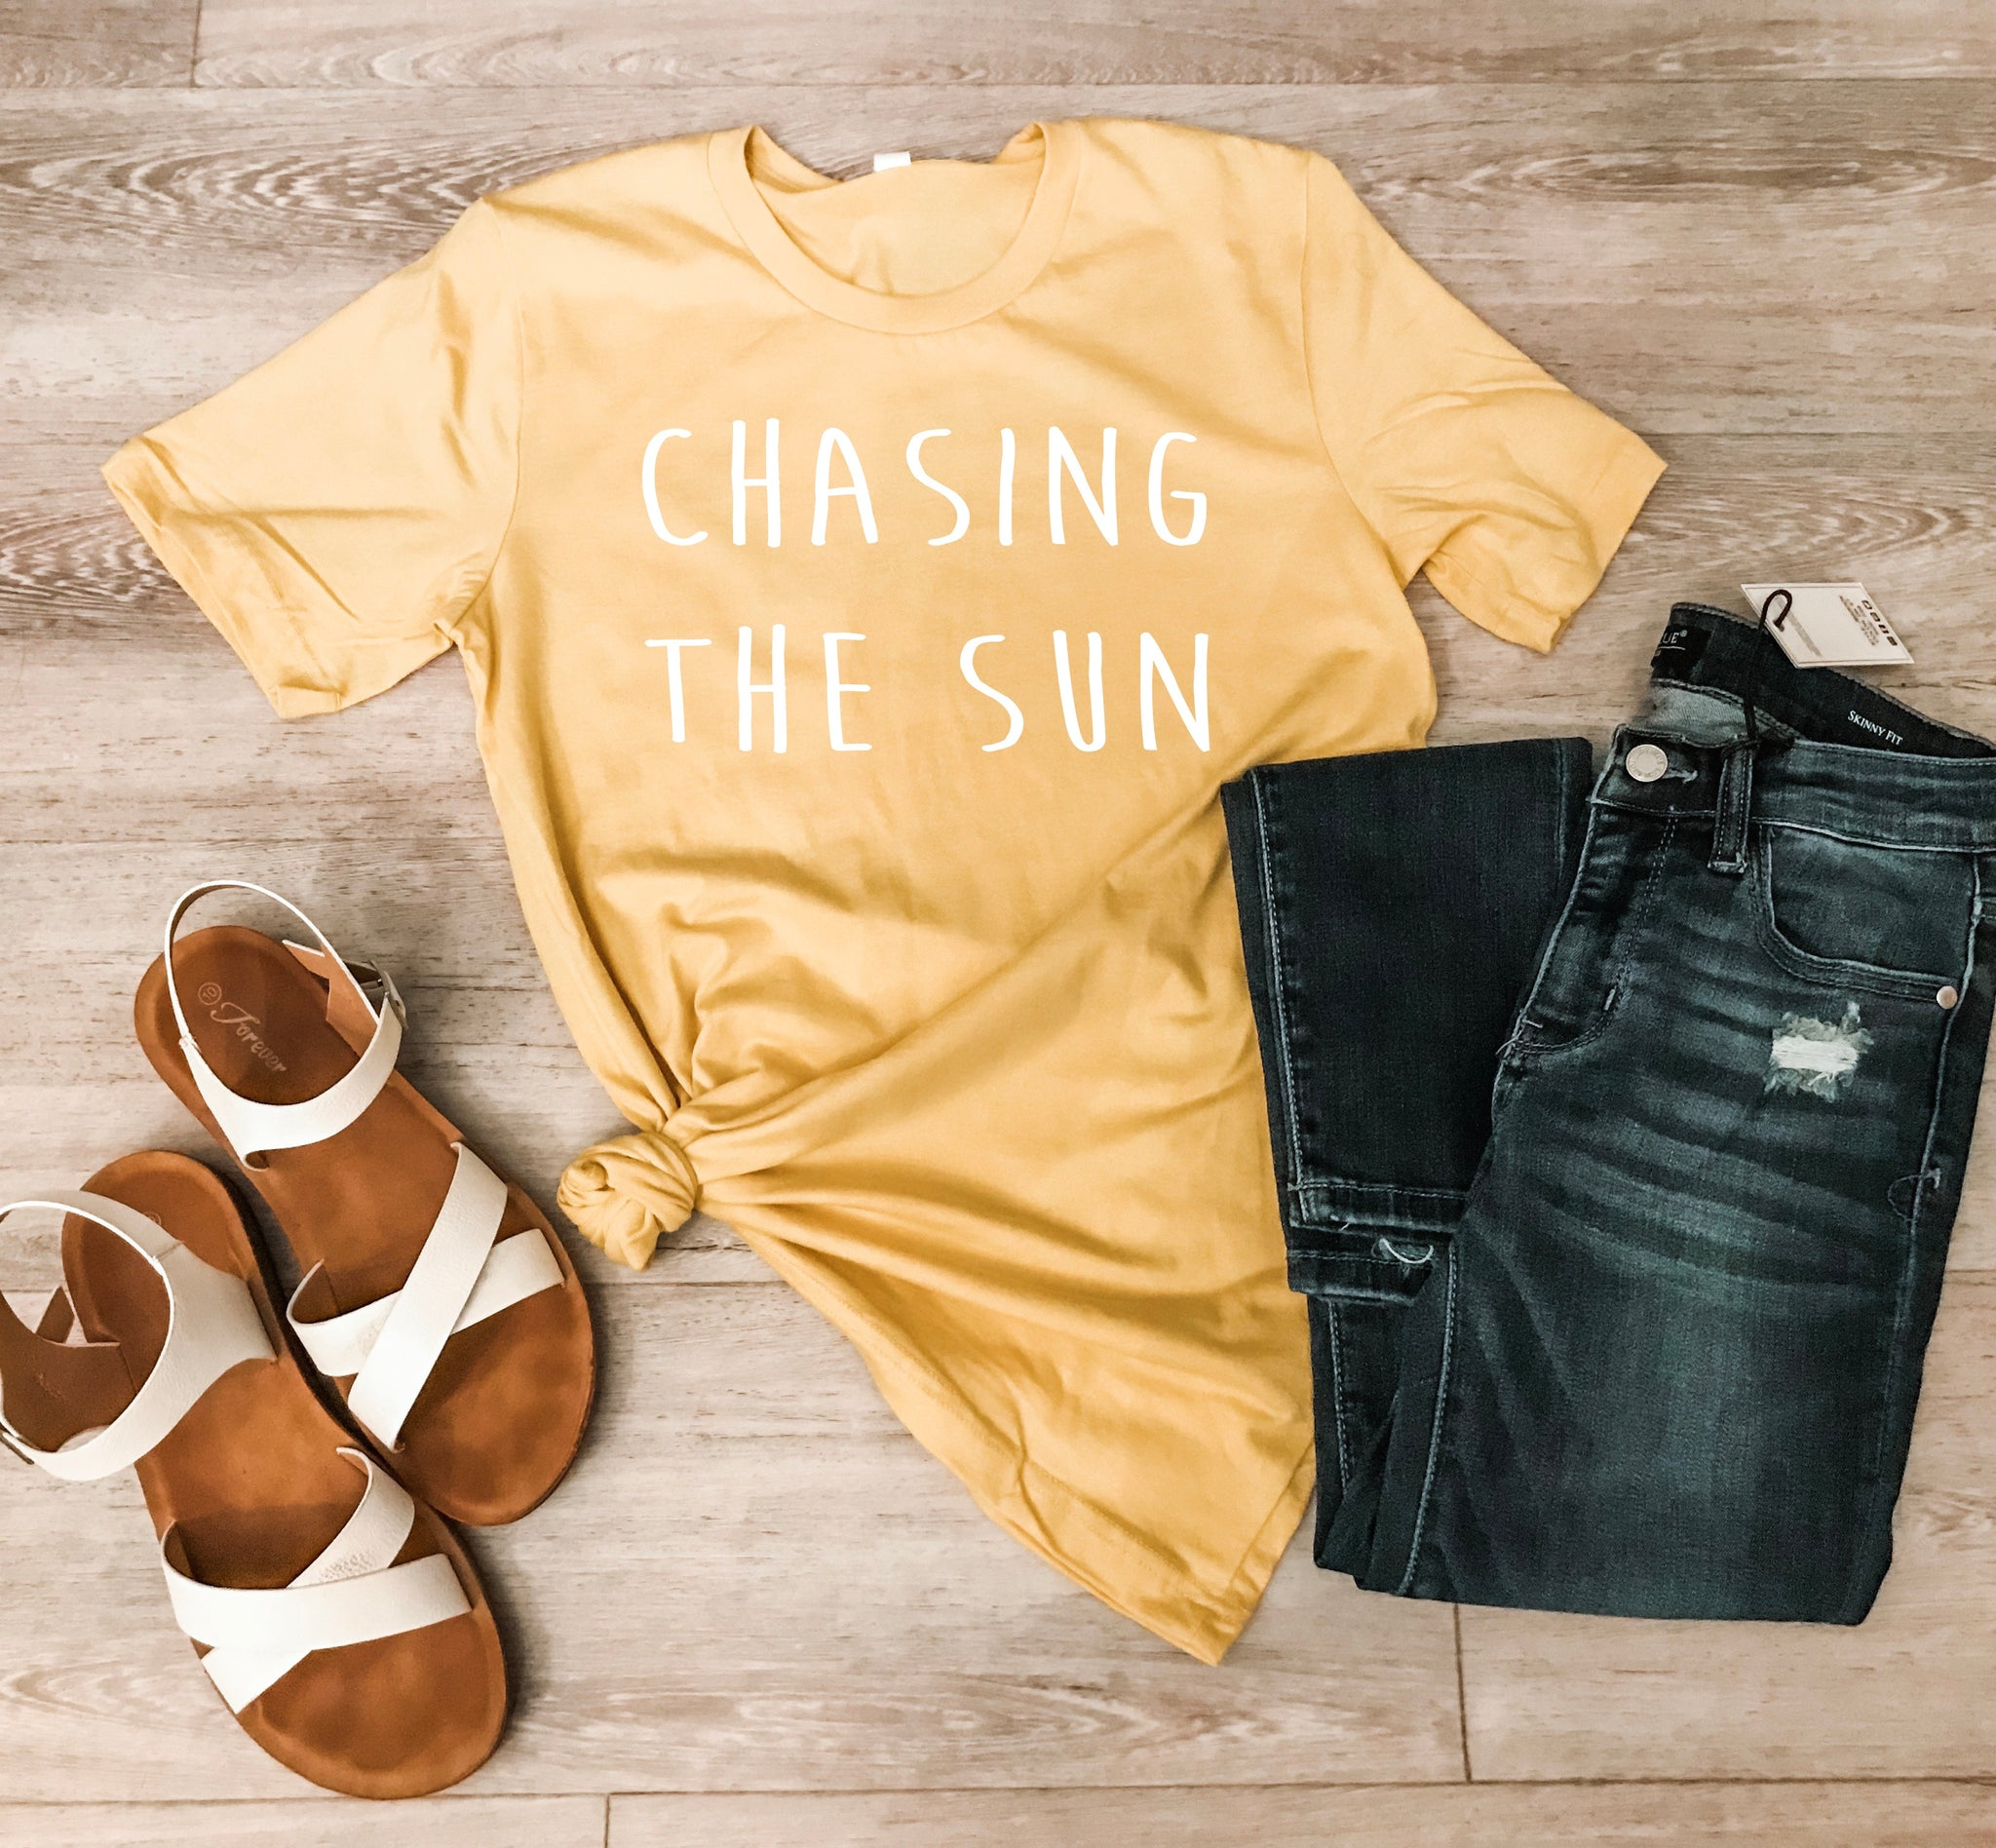 19.05.16J - Market Apparel Designs - Chasing The Sun